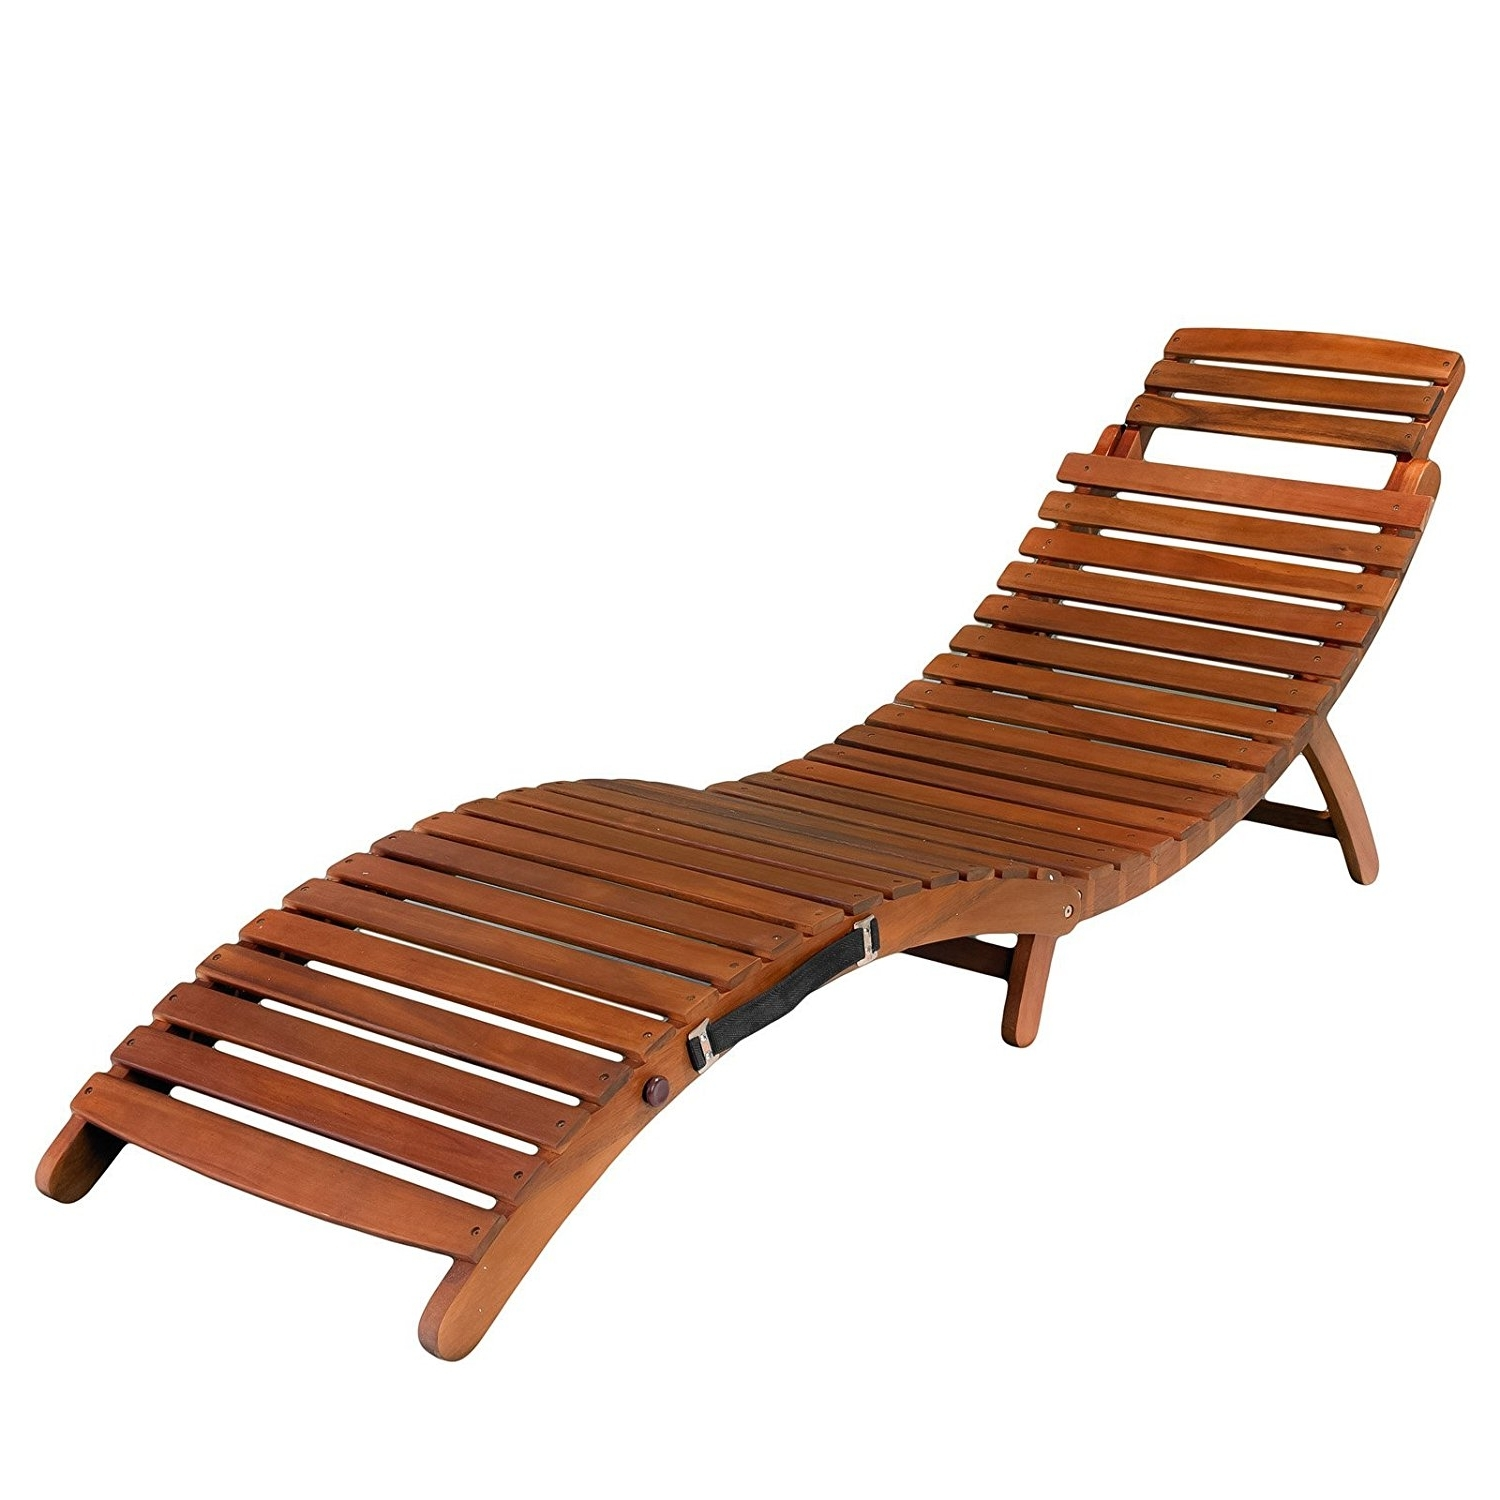 Current Outdoor Chaise Lounge Chairs Regarding Amazon: Lahaina Outdoor Chaise Lounge: Garden & Outdoor (View 3 of 15)